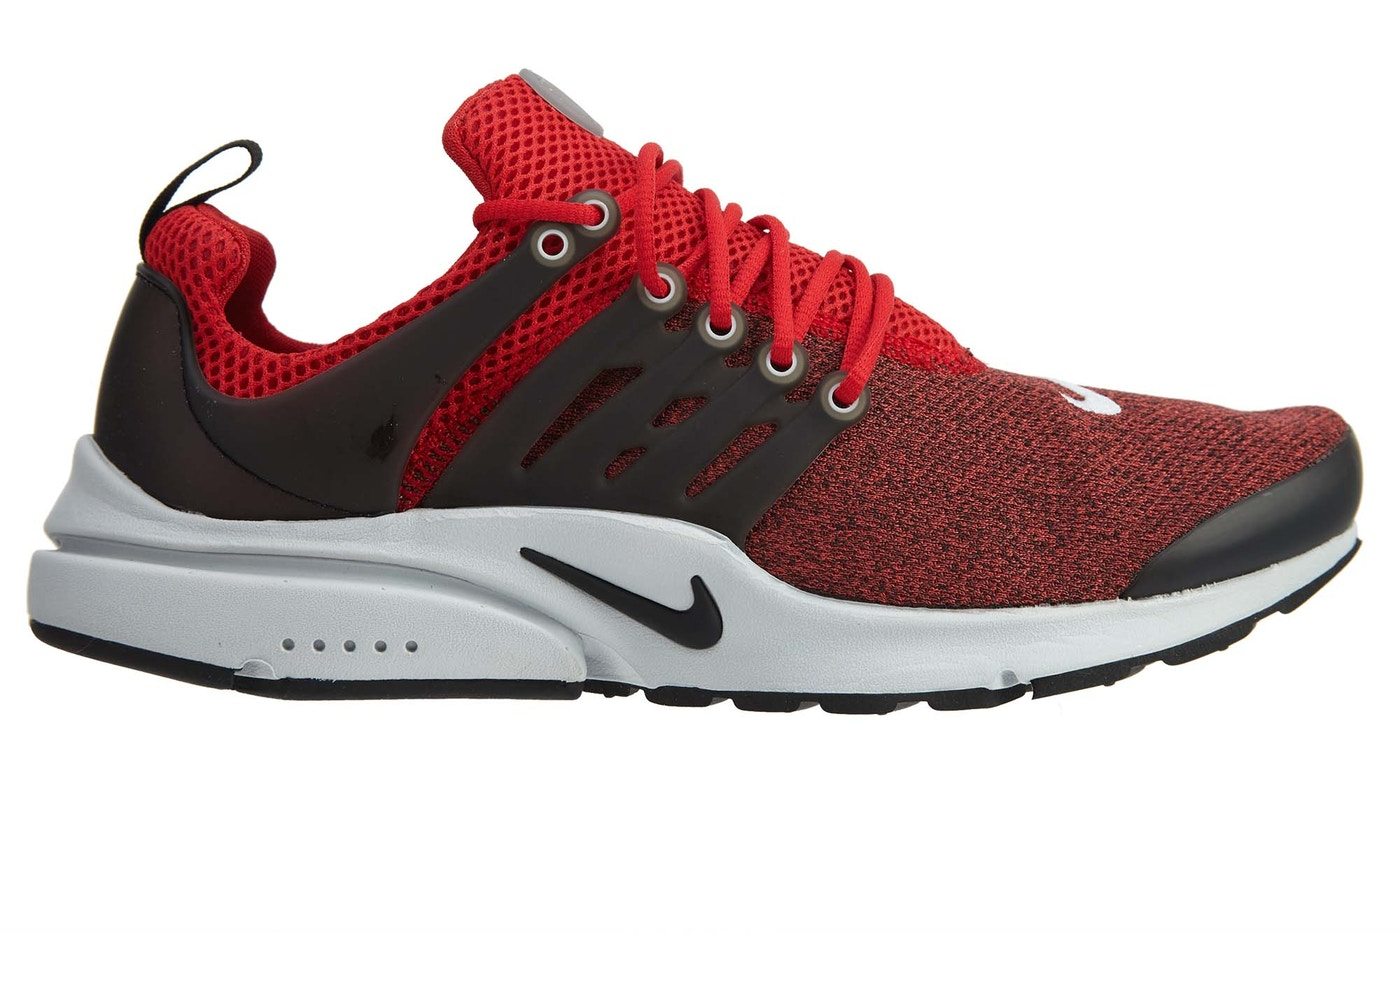 d0f2b45969e4 Sell. or Ask. Size  9.5. View All Bids. Nike Air Presto Essential  University Red Black-Black